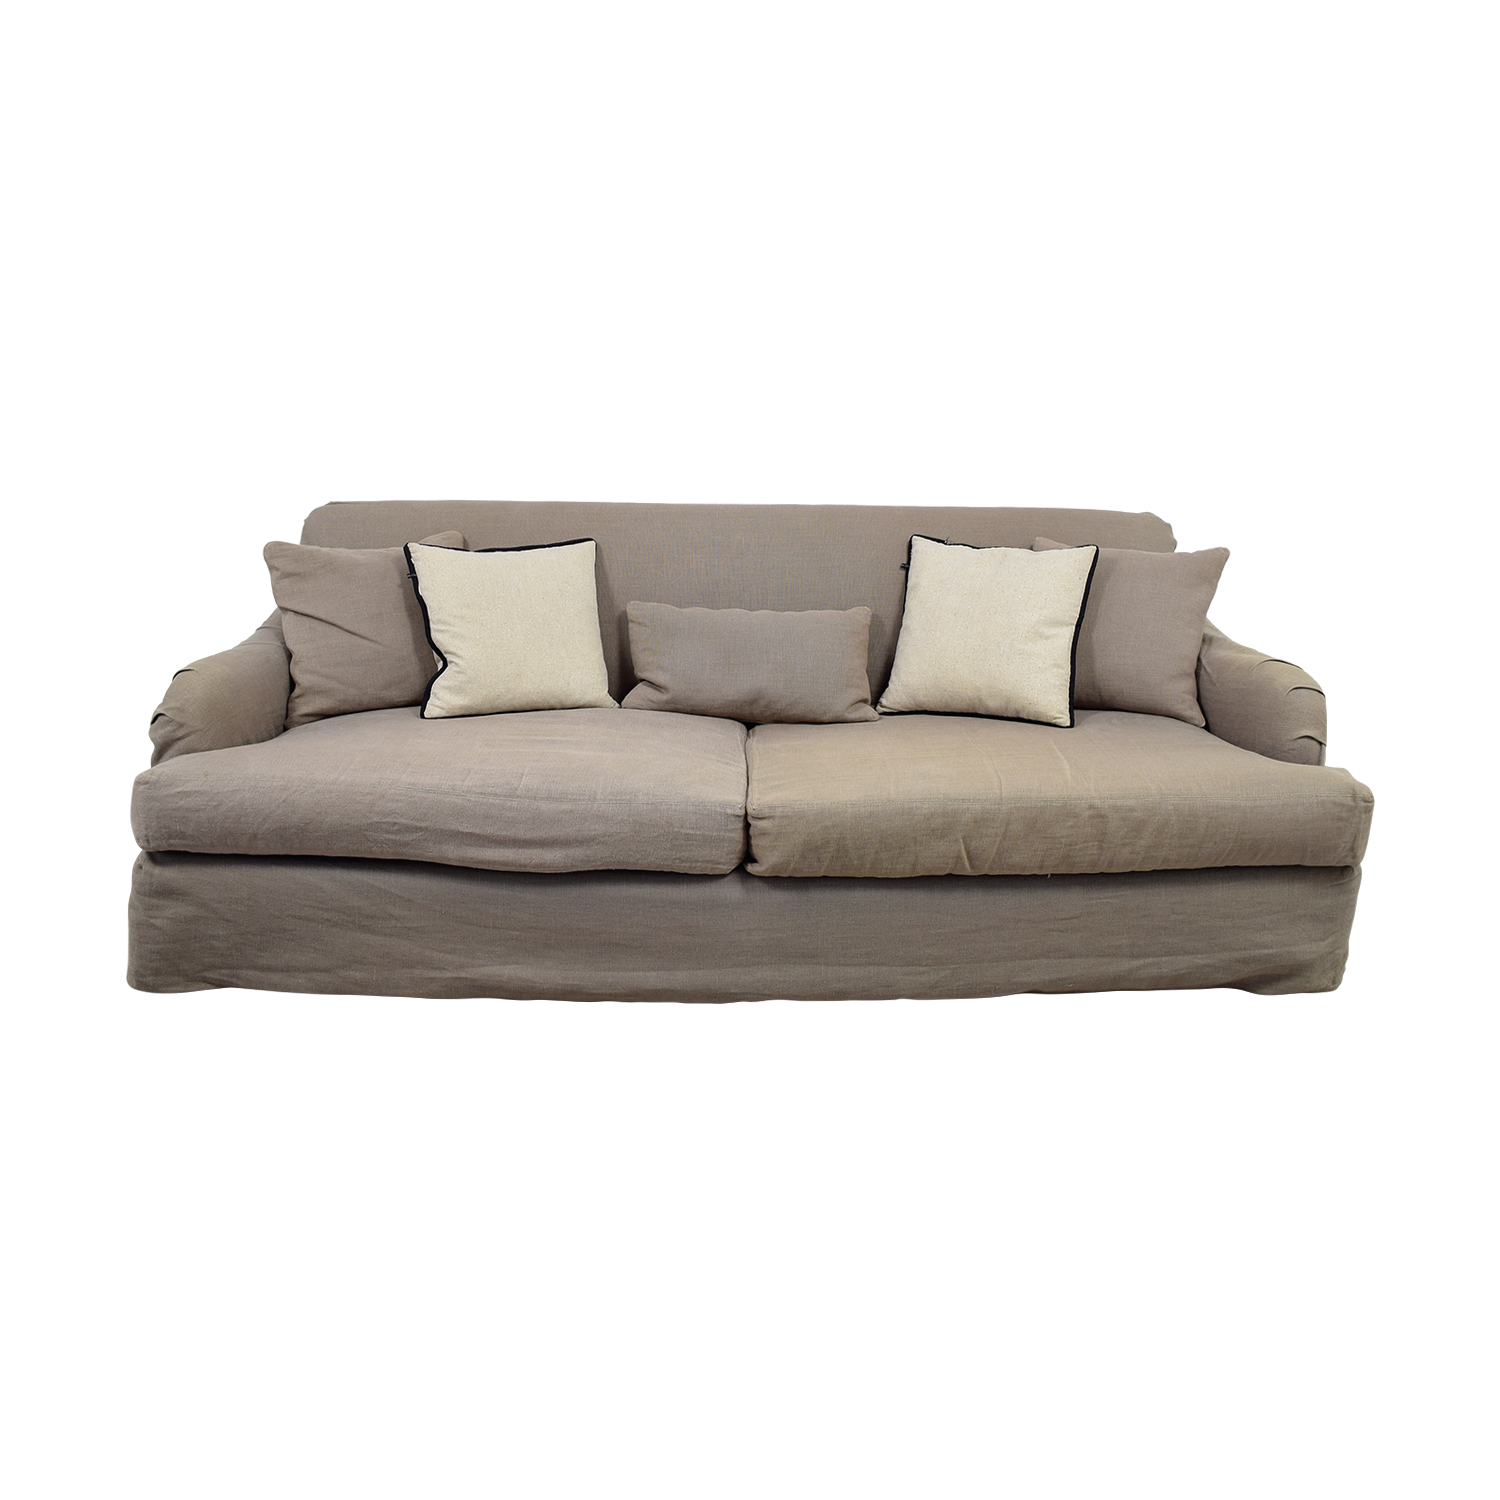 Cisco Brothers Grey Linen Down Feather Filled Sofa / Sofas ...